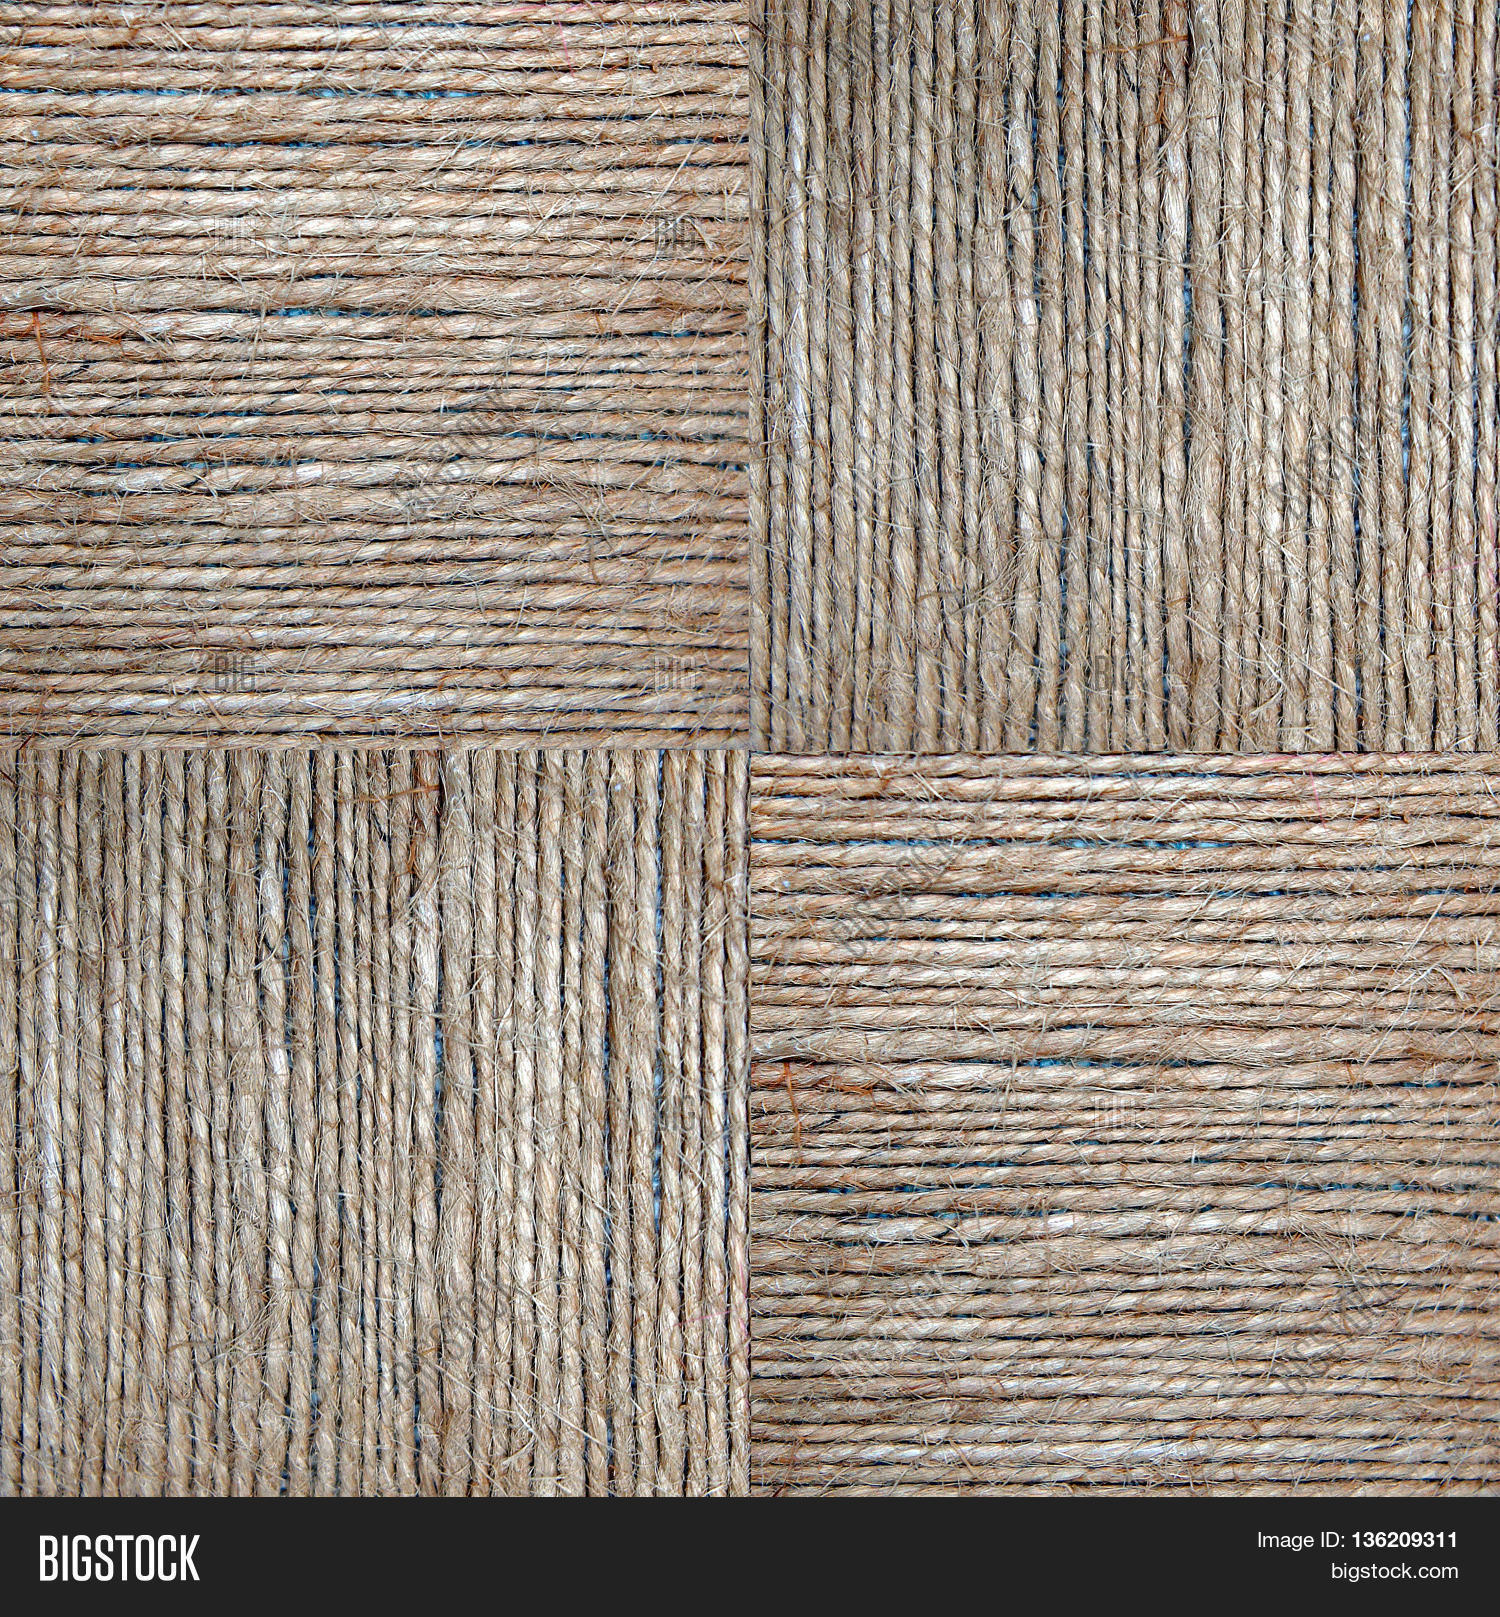 Squares Hemp Rope Texture In A Image Stock Photo 136209311